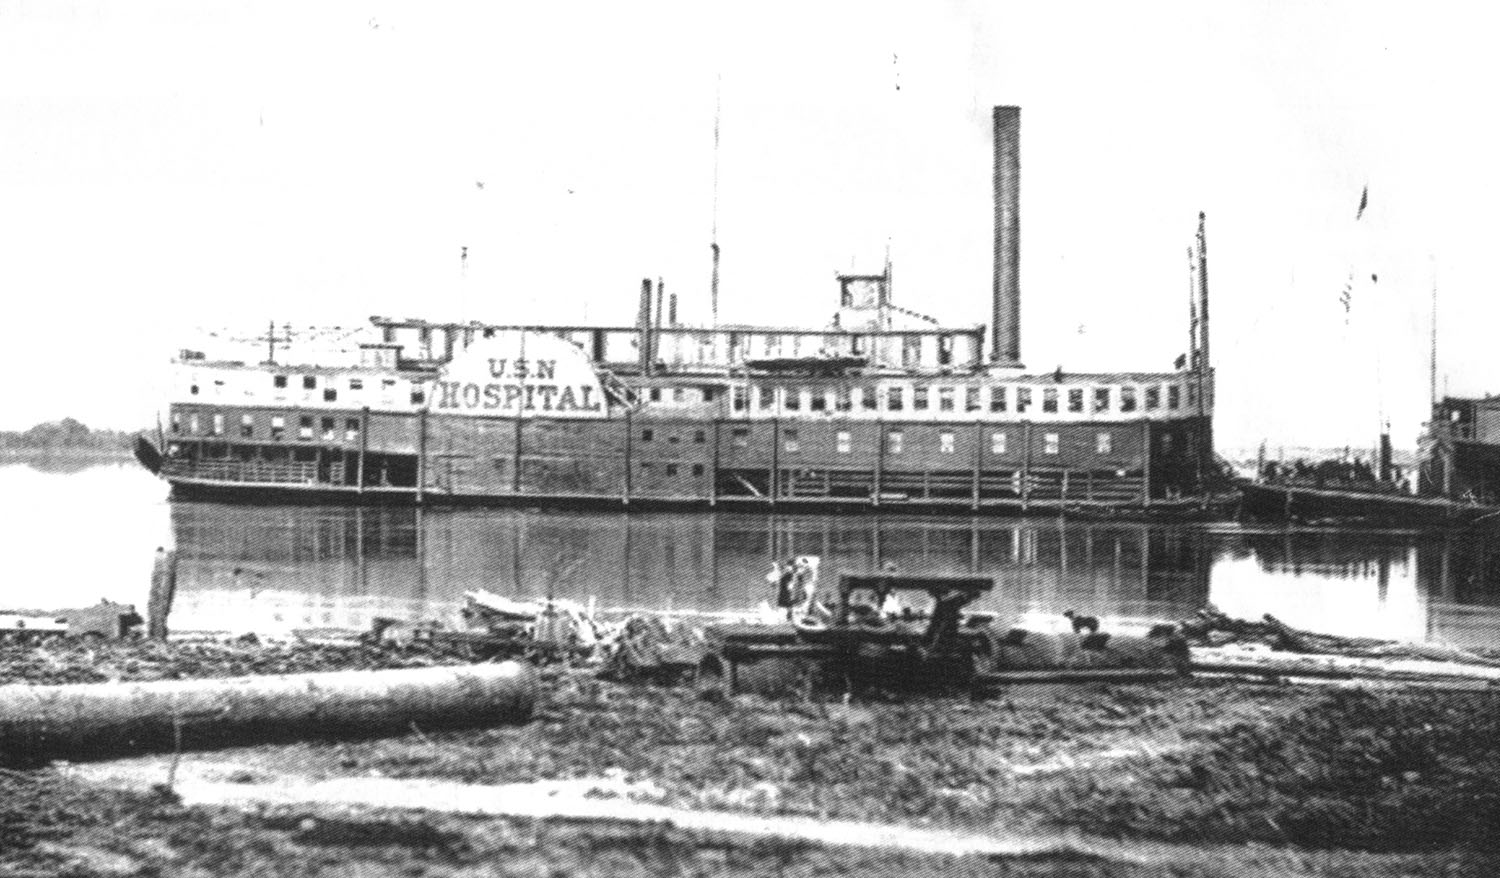 Caption for photo: The U.S. Hospital steamer Red Rover. (Keith Norrington collection)